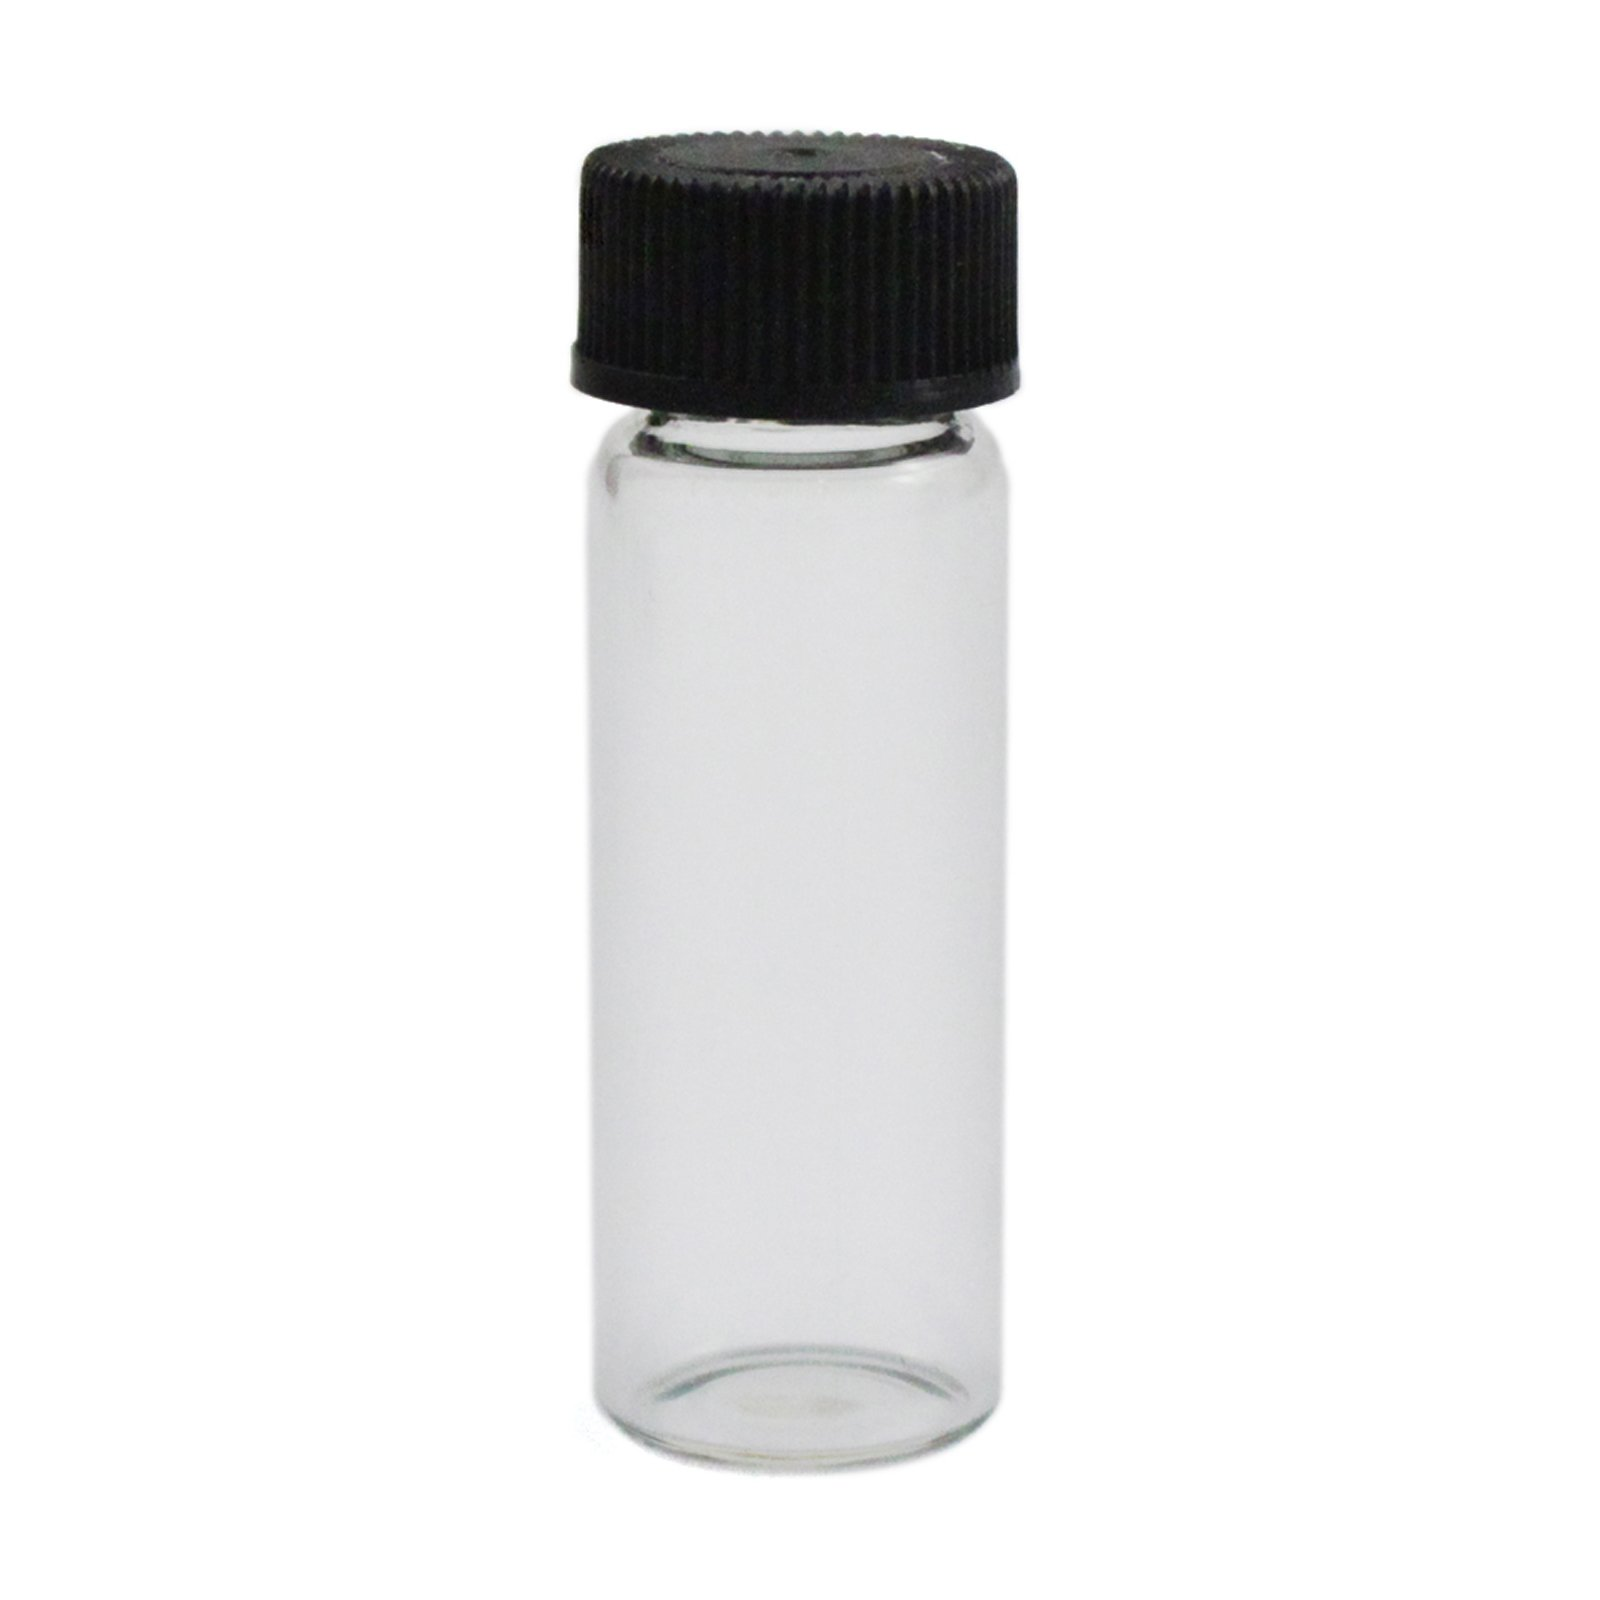 Glass Gold Vial - 1 dram